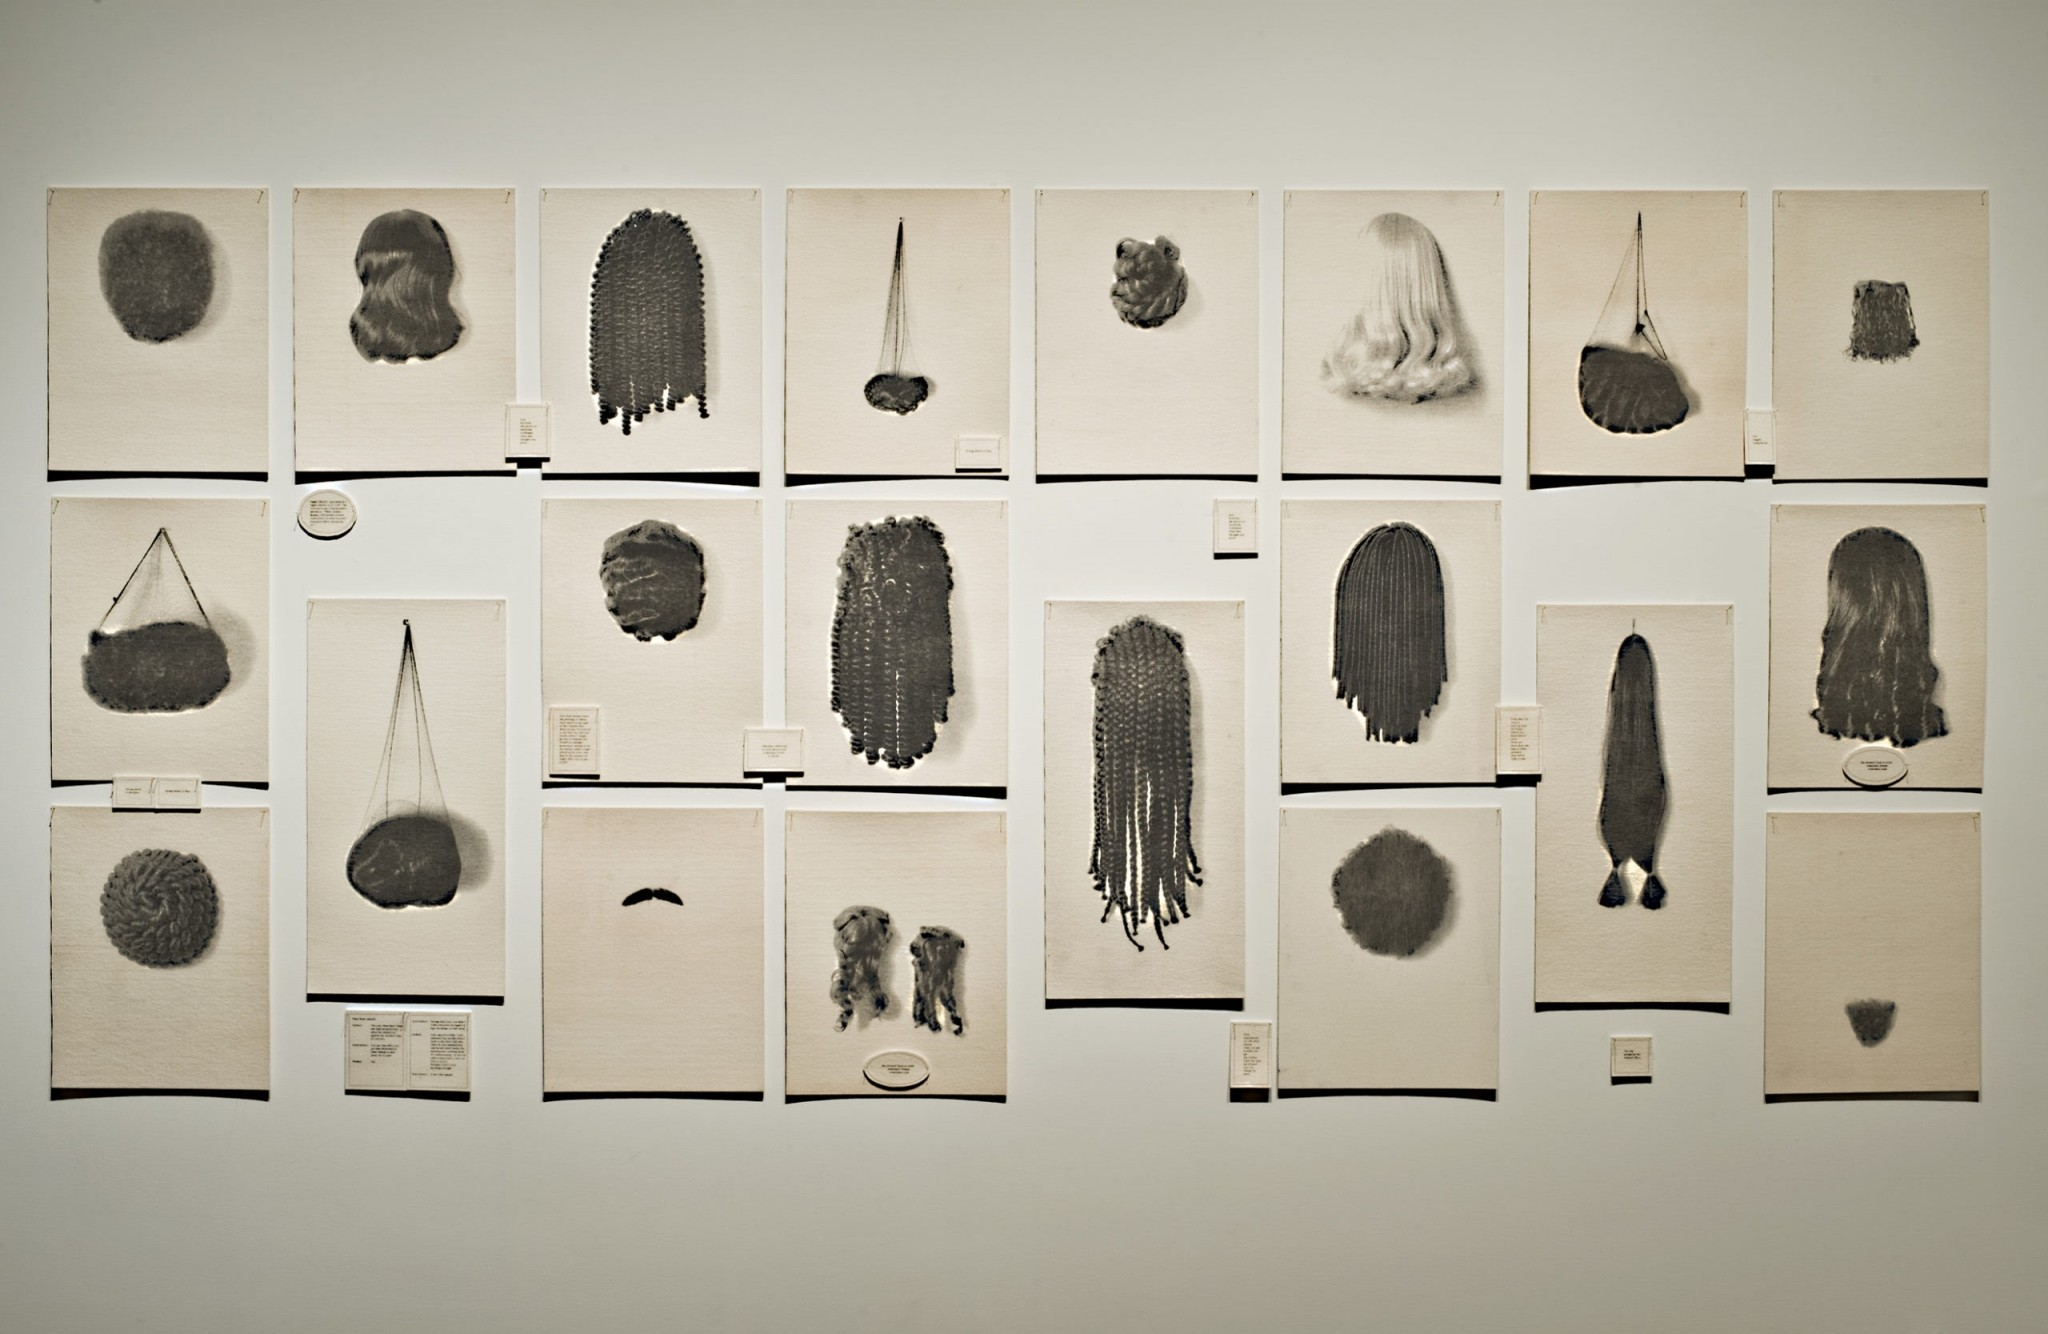 """Lorna Simpson's, """"Wigs,"""" (1994) presents an array of vacant wigs and hairpieces, from thick braids and weaves to smooth blond locks. The piece is featured in the exhibit, """"PICTURE ID: Contemporary African American Works on Paper,"""" opening at the Toledo Museum of Art on Aug. 4. (Photo courtesy of the Toledo Museum of Art)"""